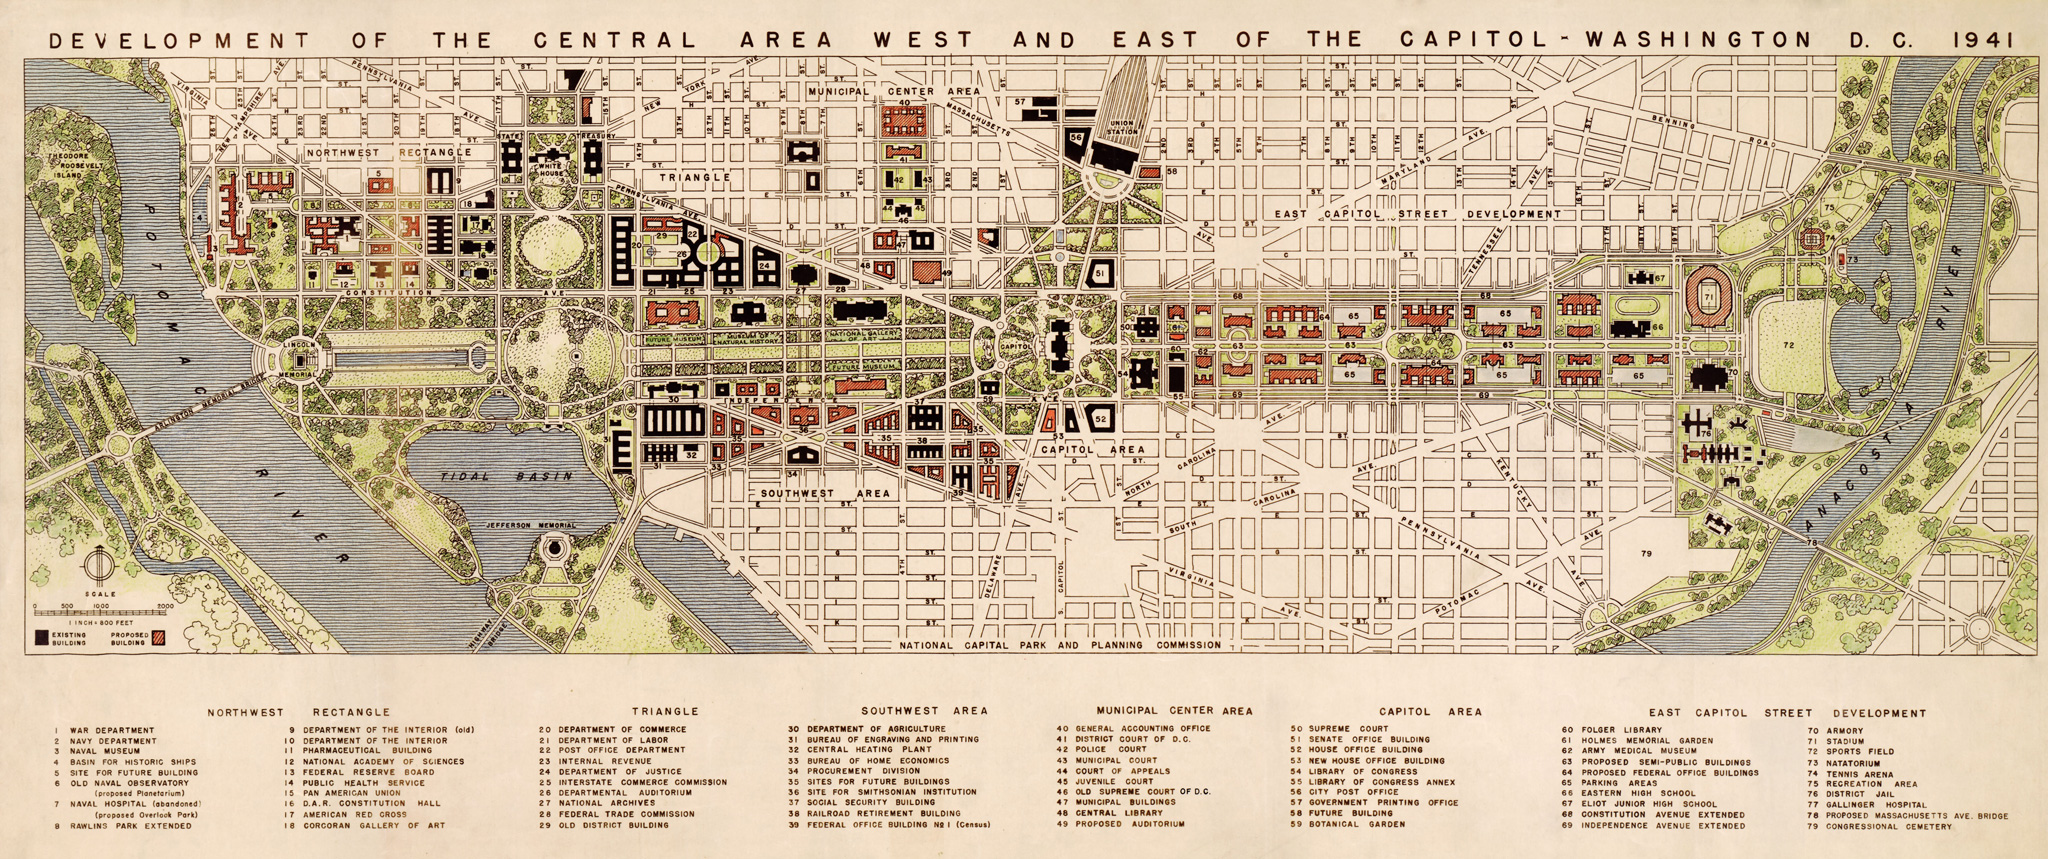 A Second National Mall The East Capitol Street That Might Have - Washington dc map of sites